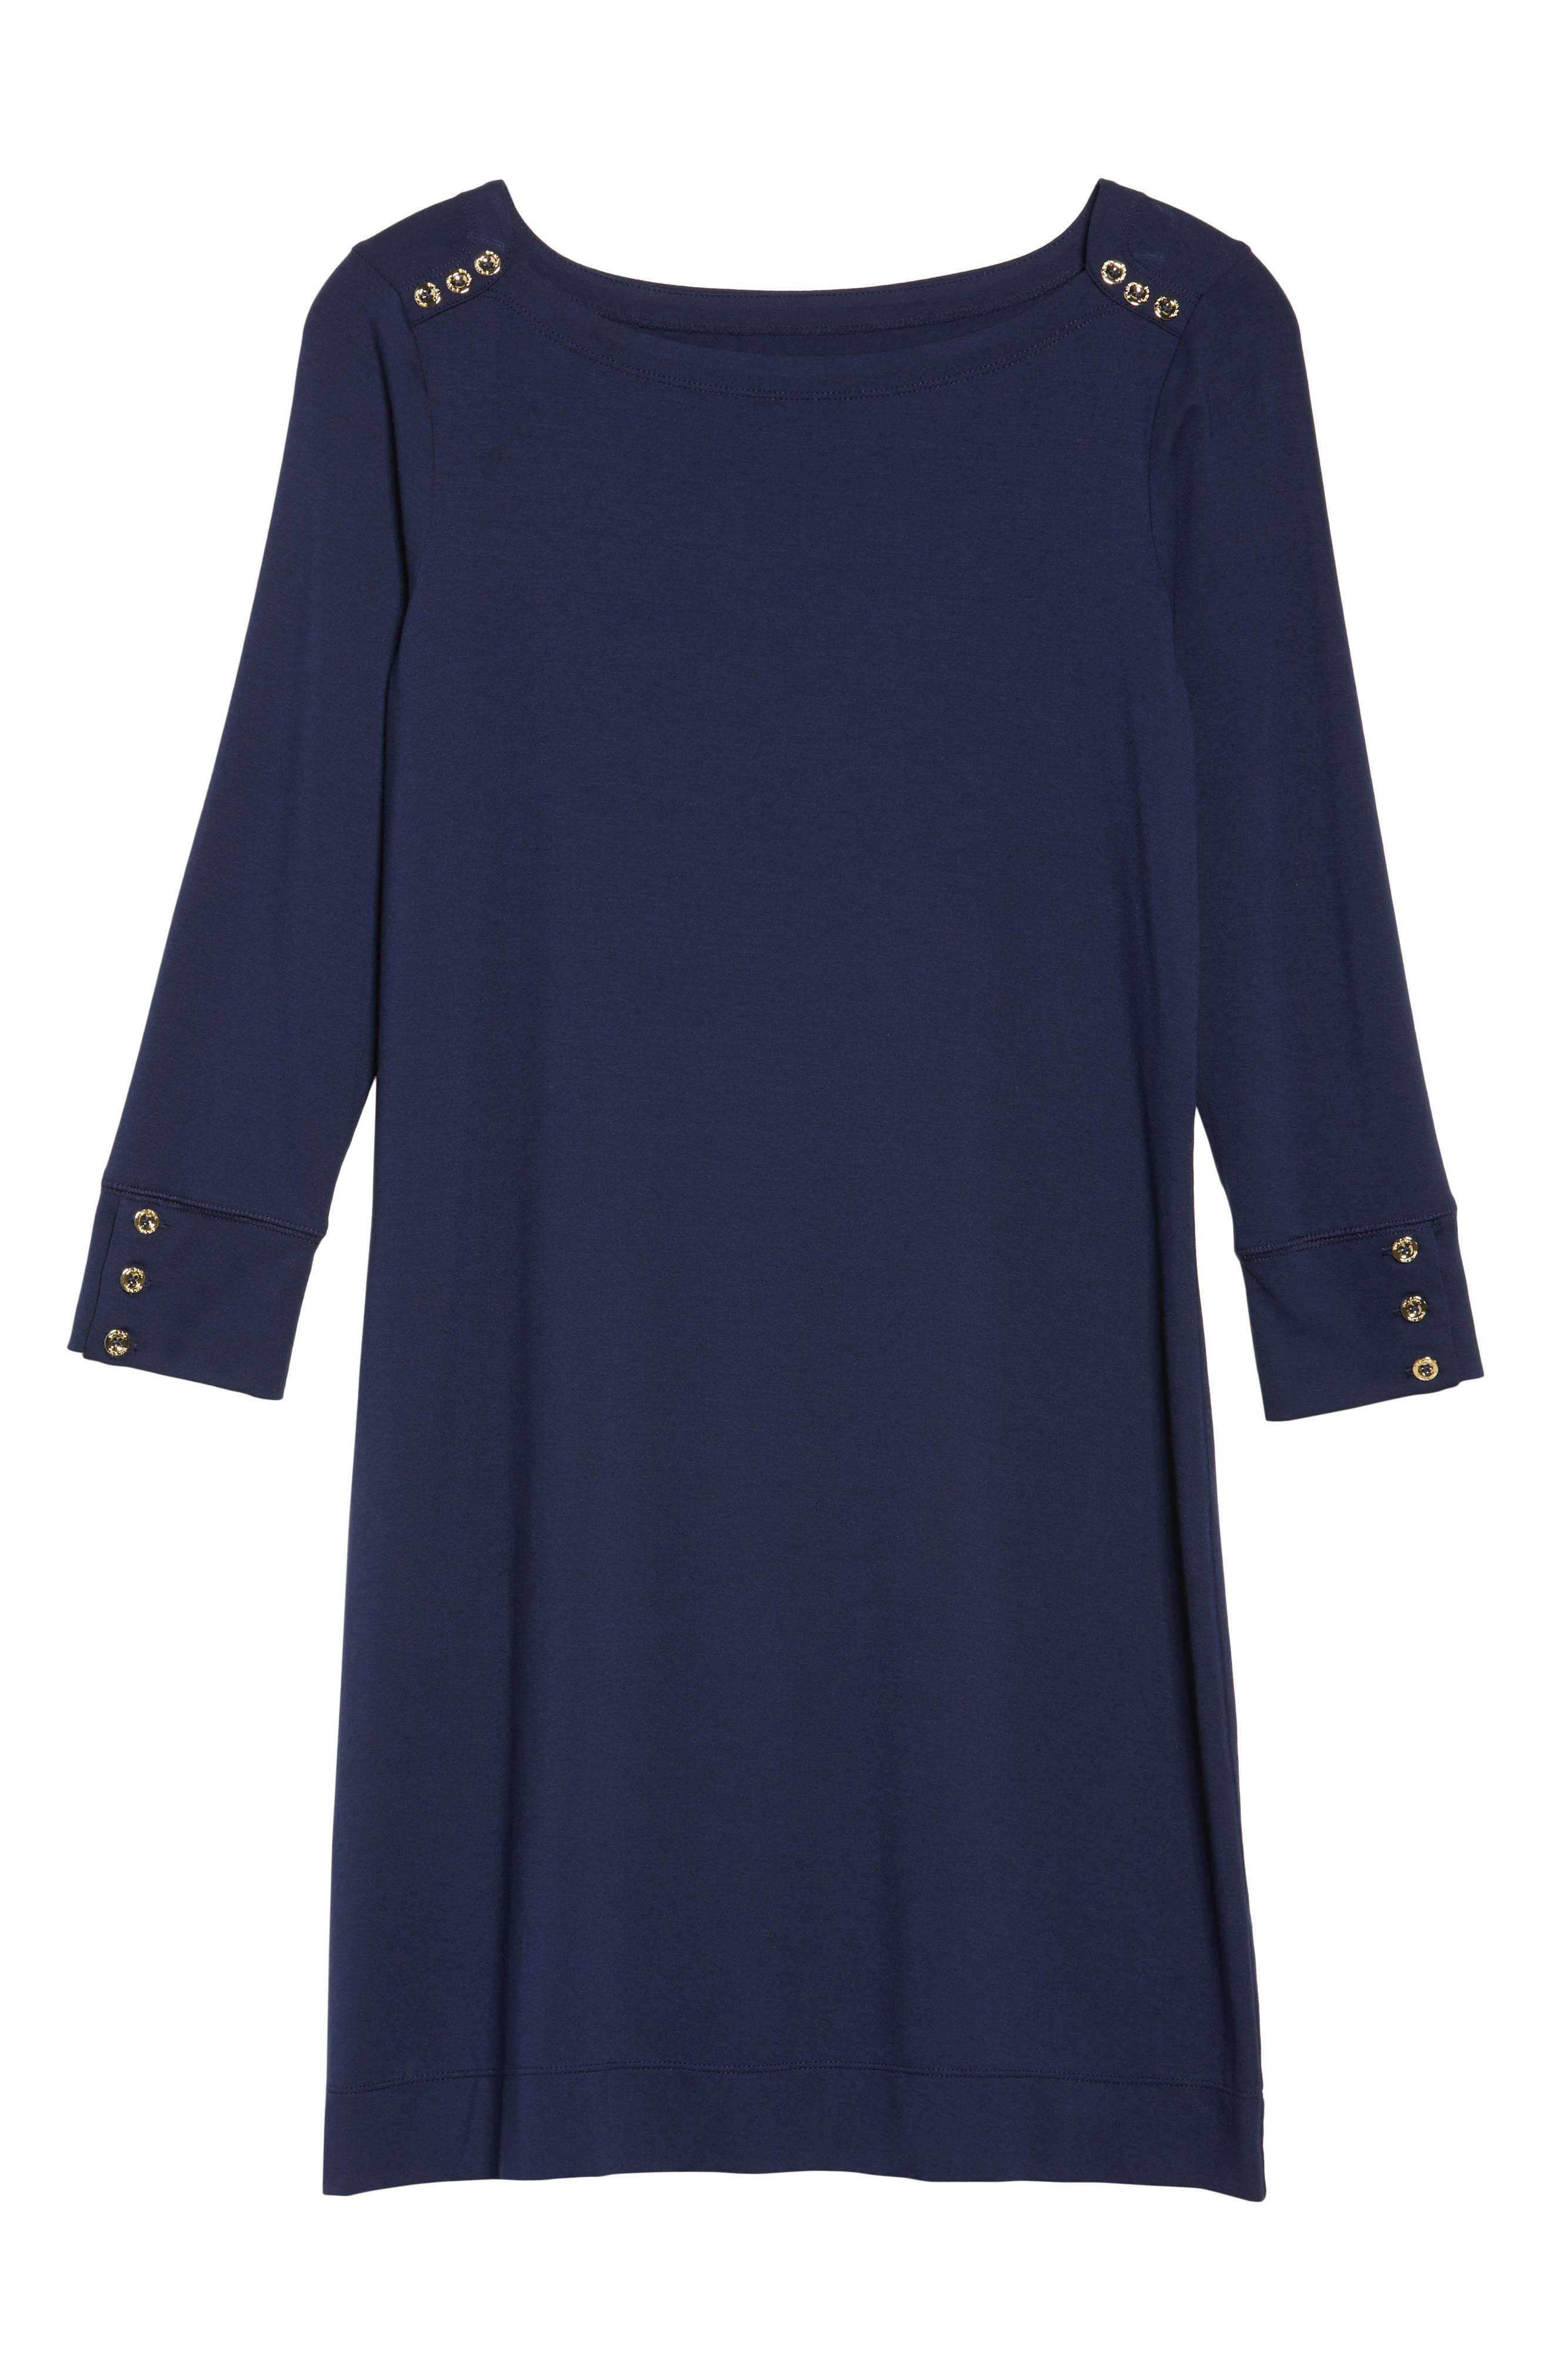 LILLY PULITZER<SUP>®</SUP>,                             Sophie UPF 50+ Dress,                             Alternate thumbnail 6, color,                             TRUE NAVY